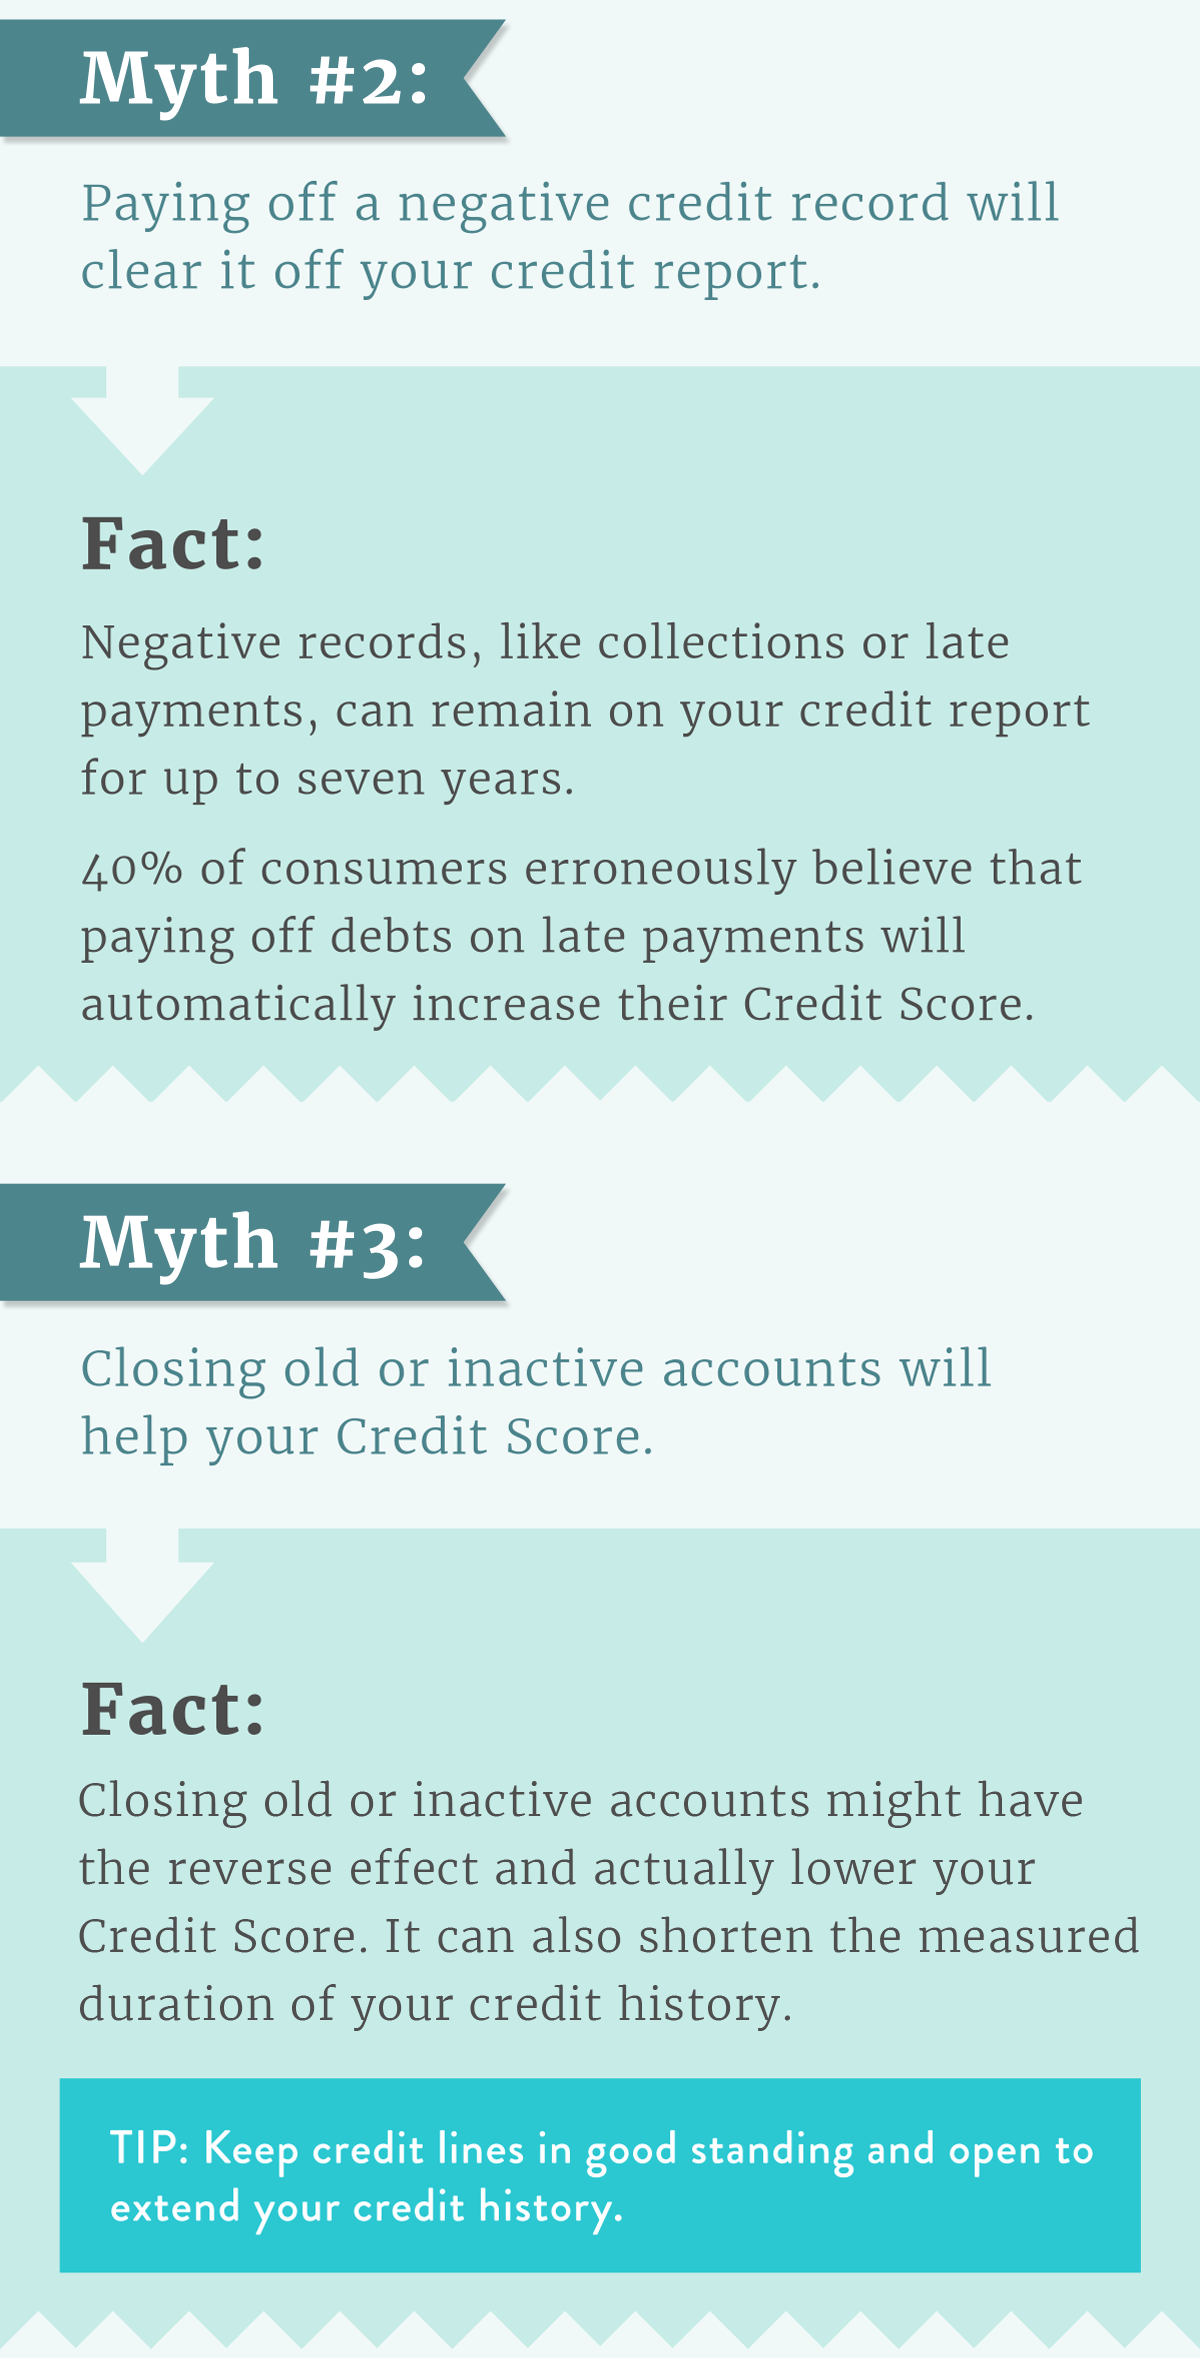 Myth 2 : Paying off a negative credit record will clear it off your credit report.